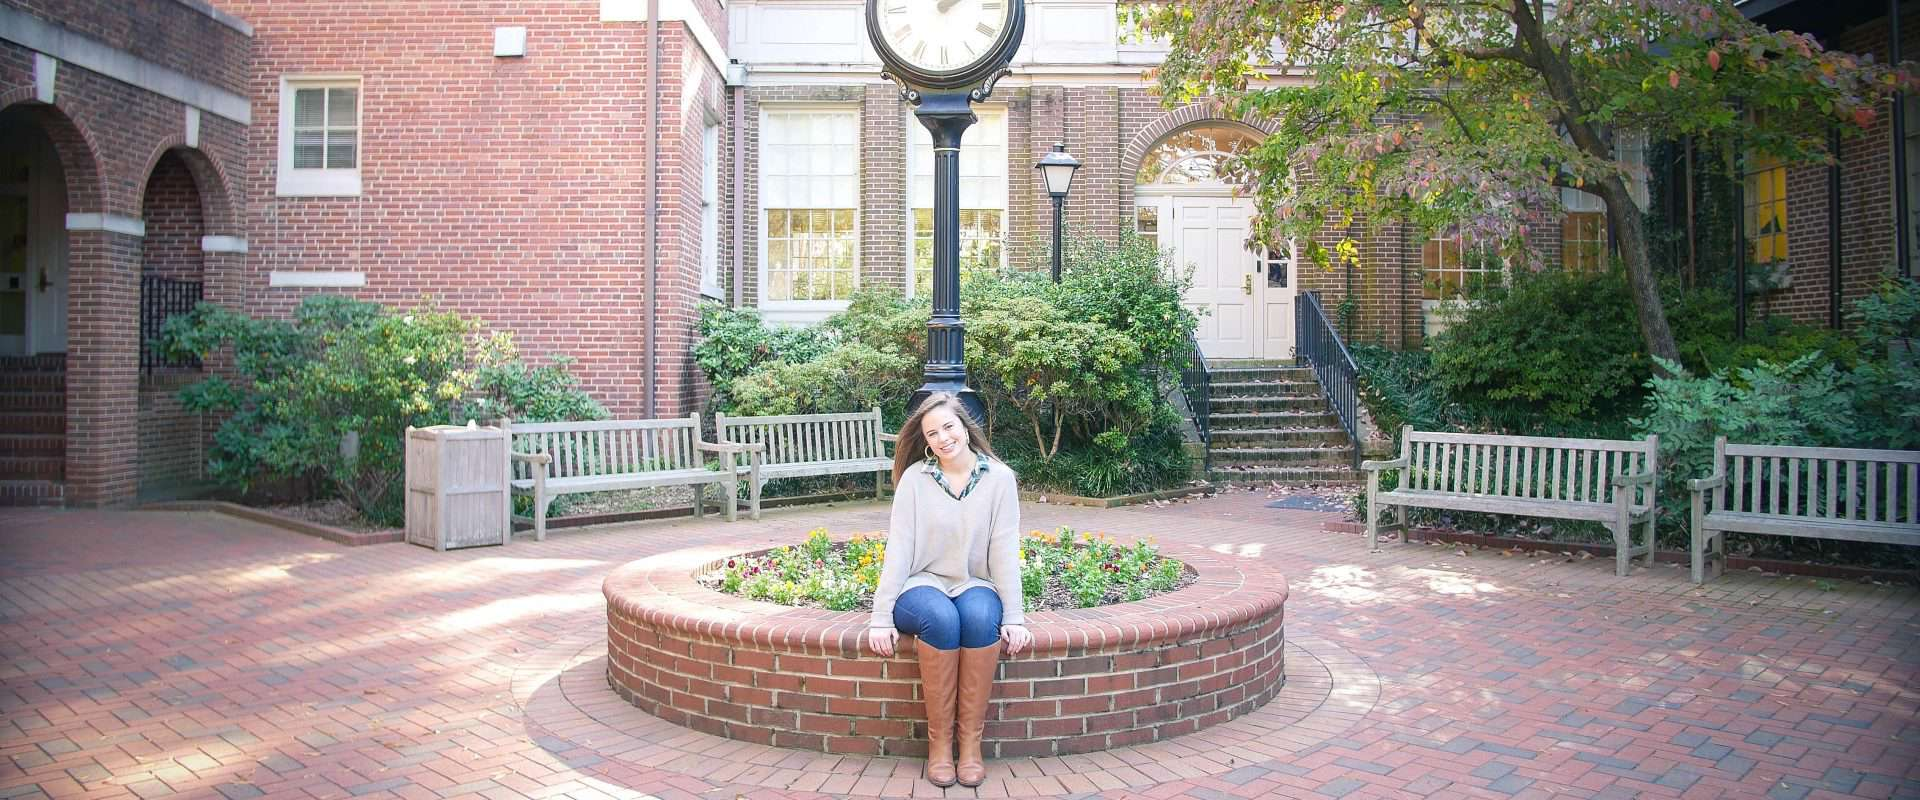 Mary Todd Earnhardt '20 is the 2017 recipient of the First Presbyterian Scholarship